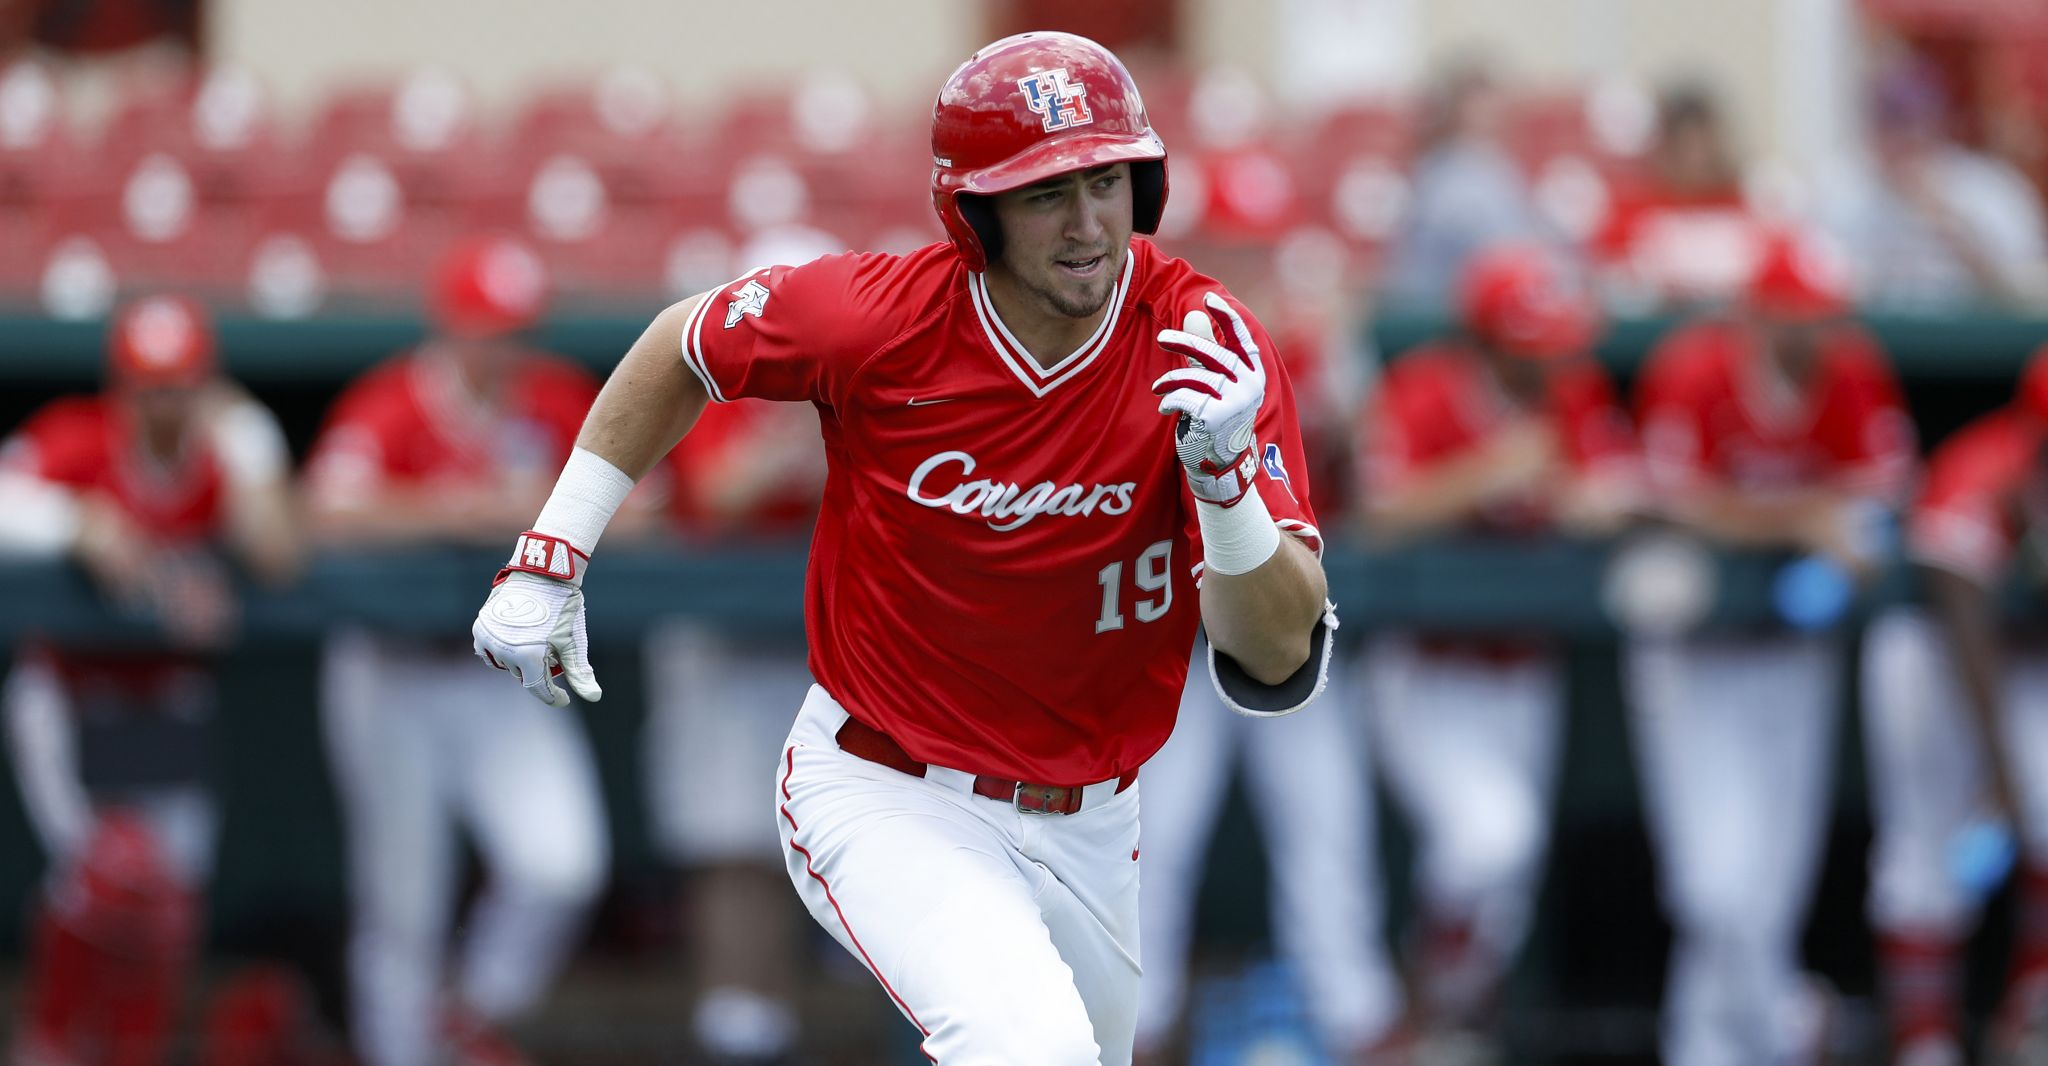 UH falls to UConn in AAC baseball tournament opener; elimination game next